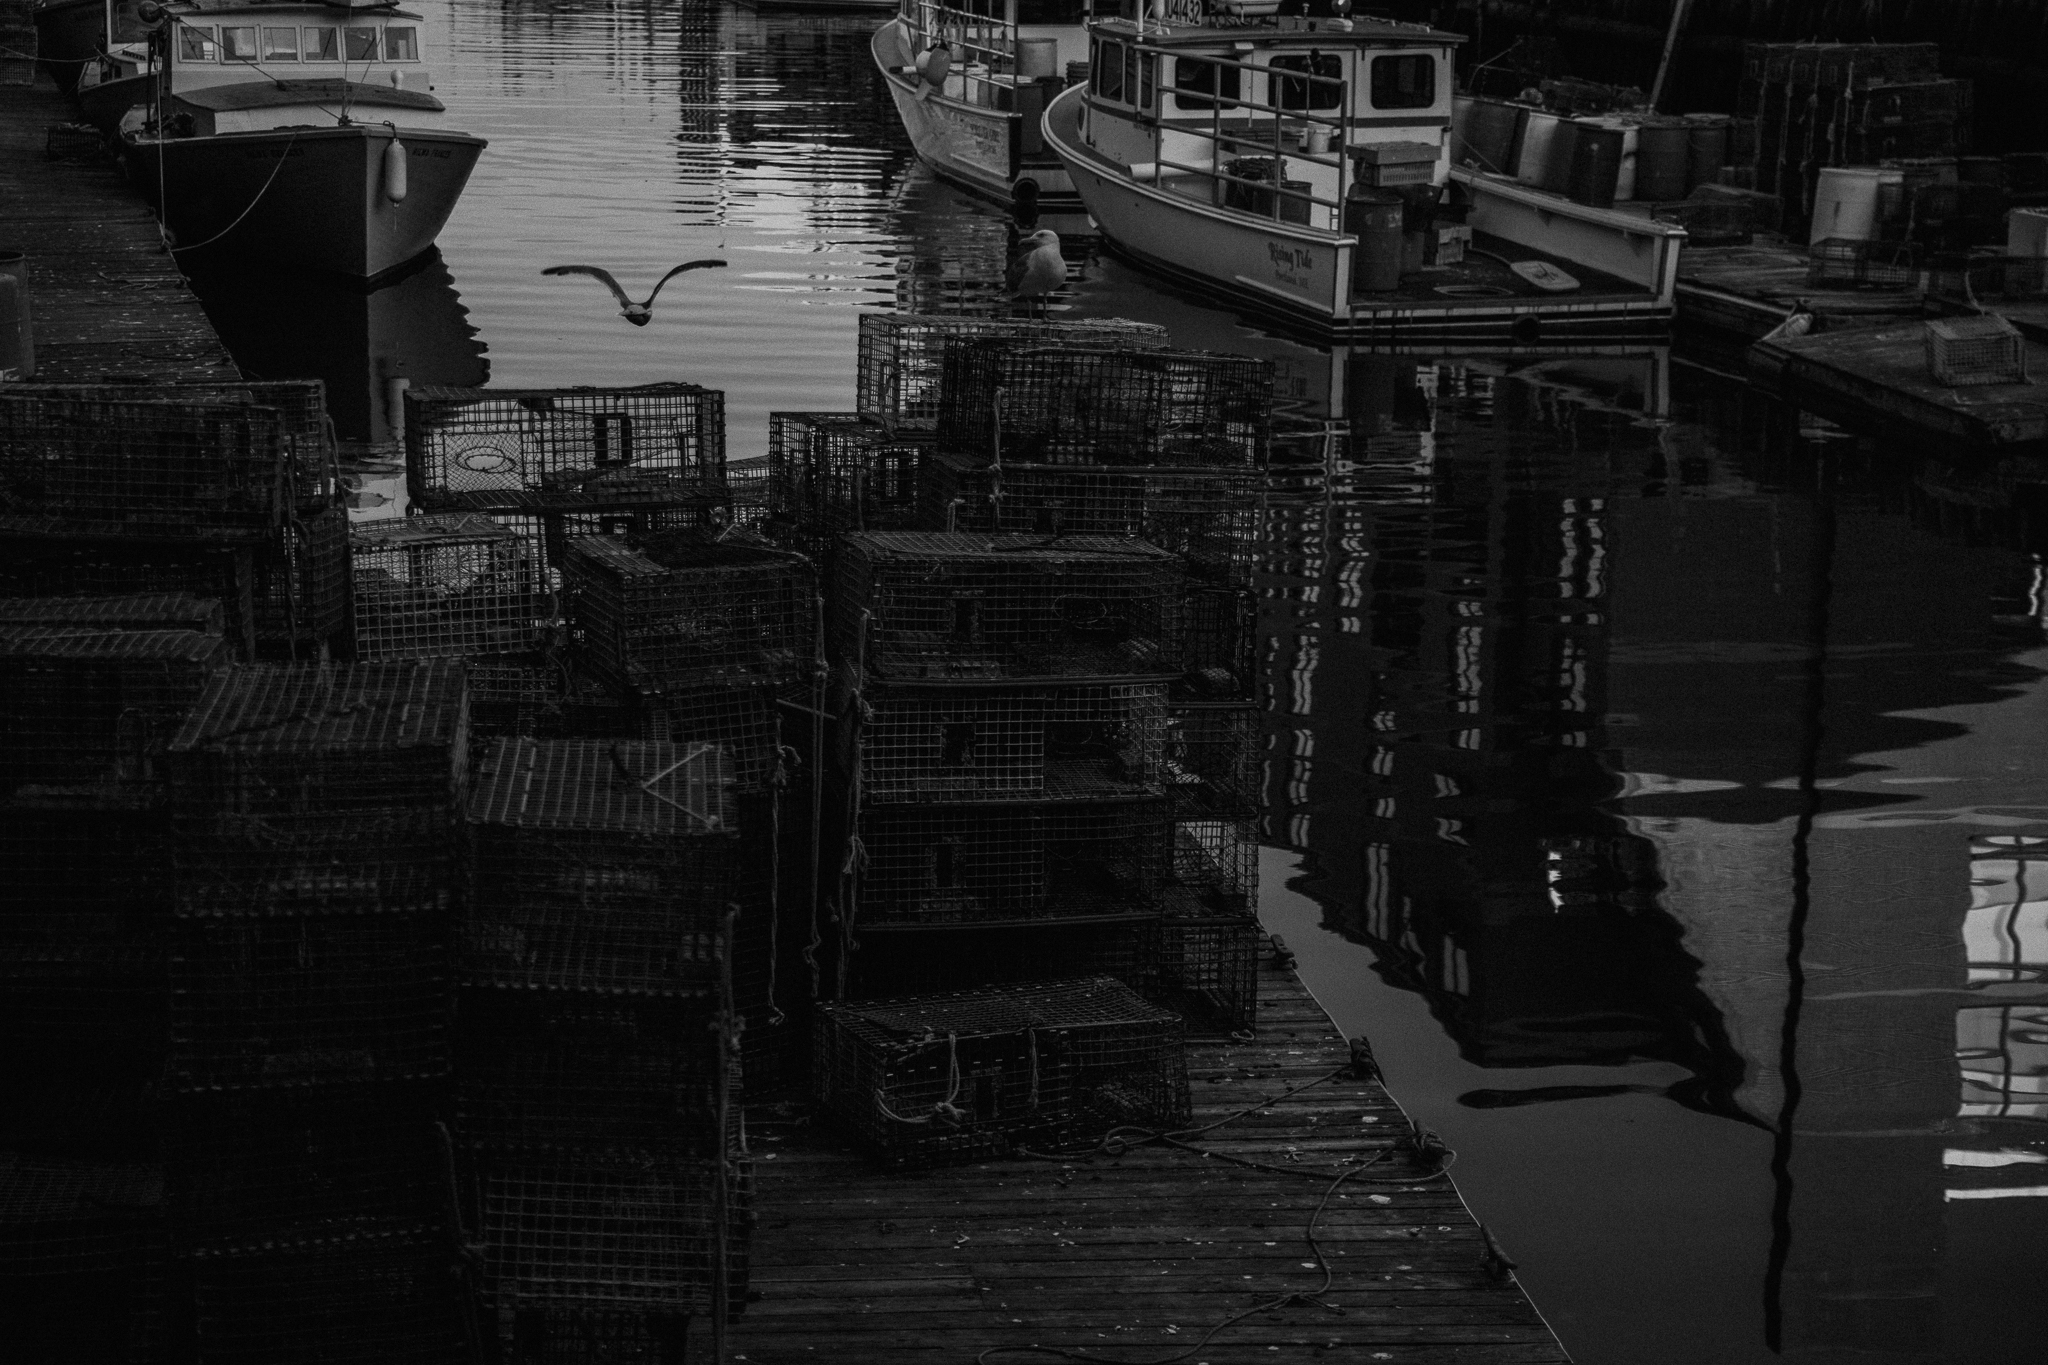 Portland, Maine by photographer, Allie Chambers